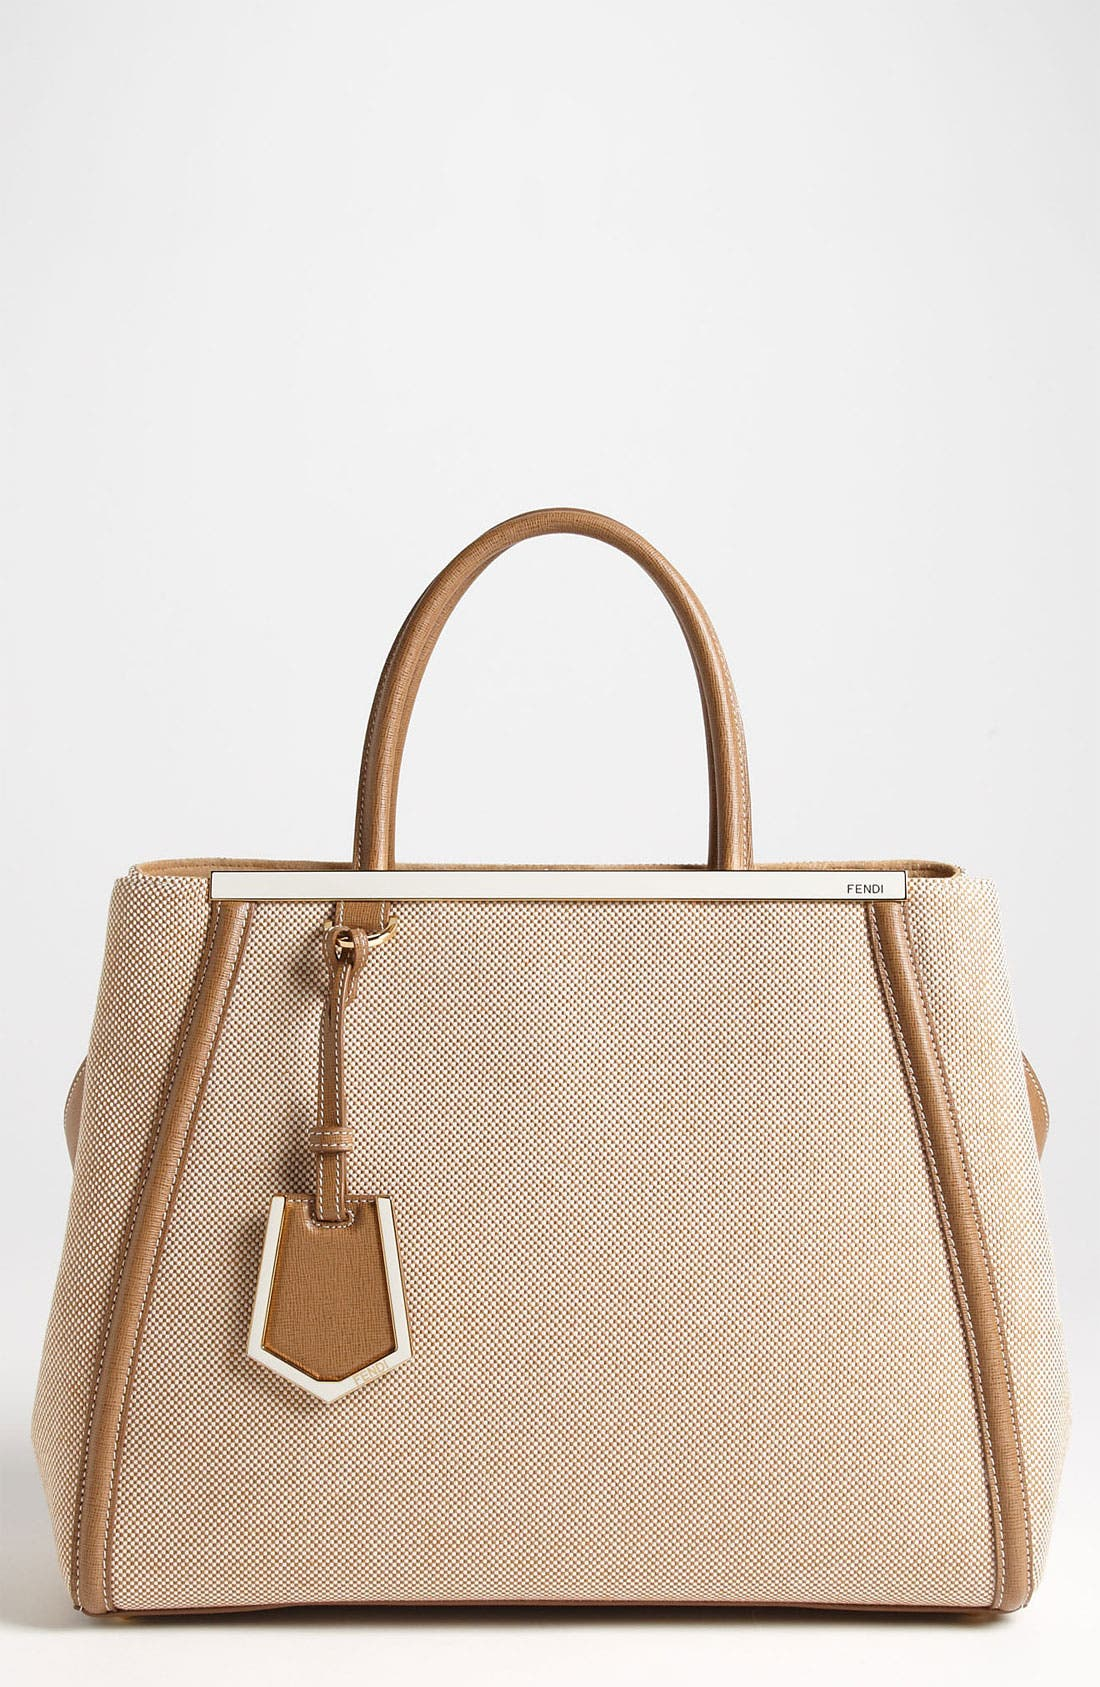 Alternate Image 1 Selected - Fendi '2Jours - Medium' Canvas Shopper